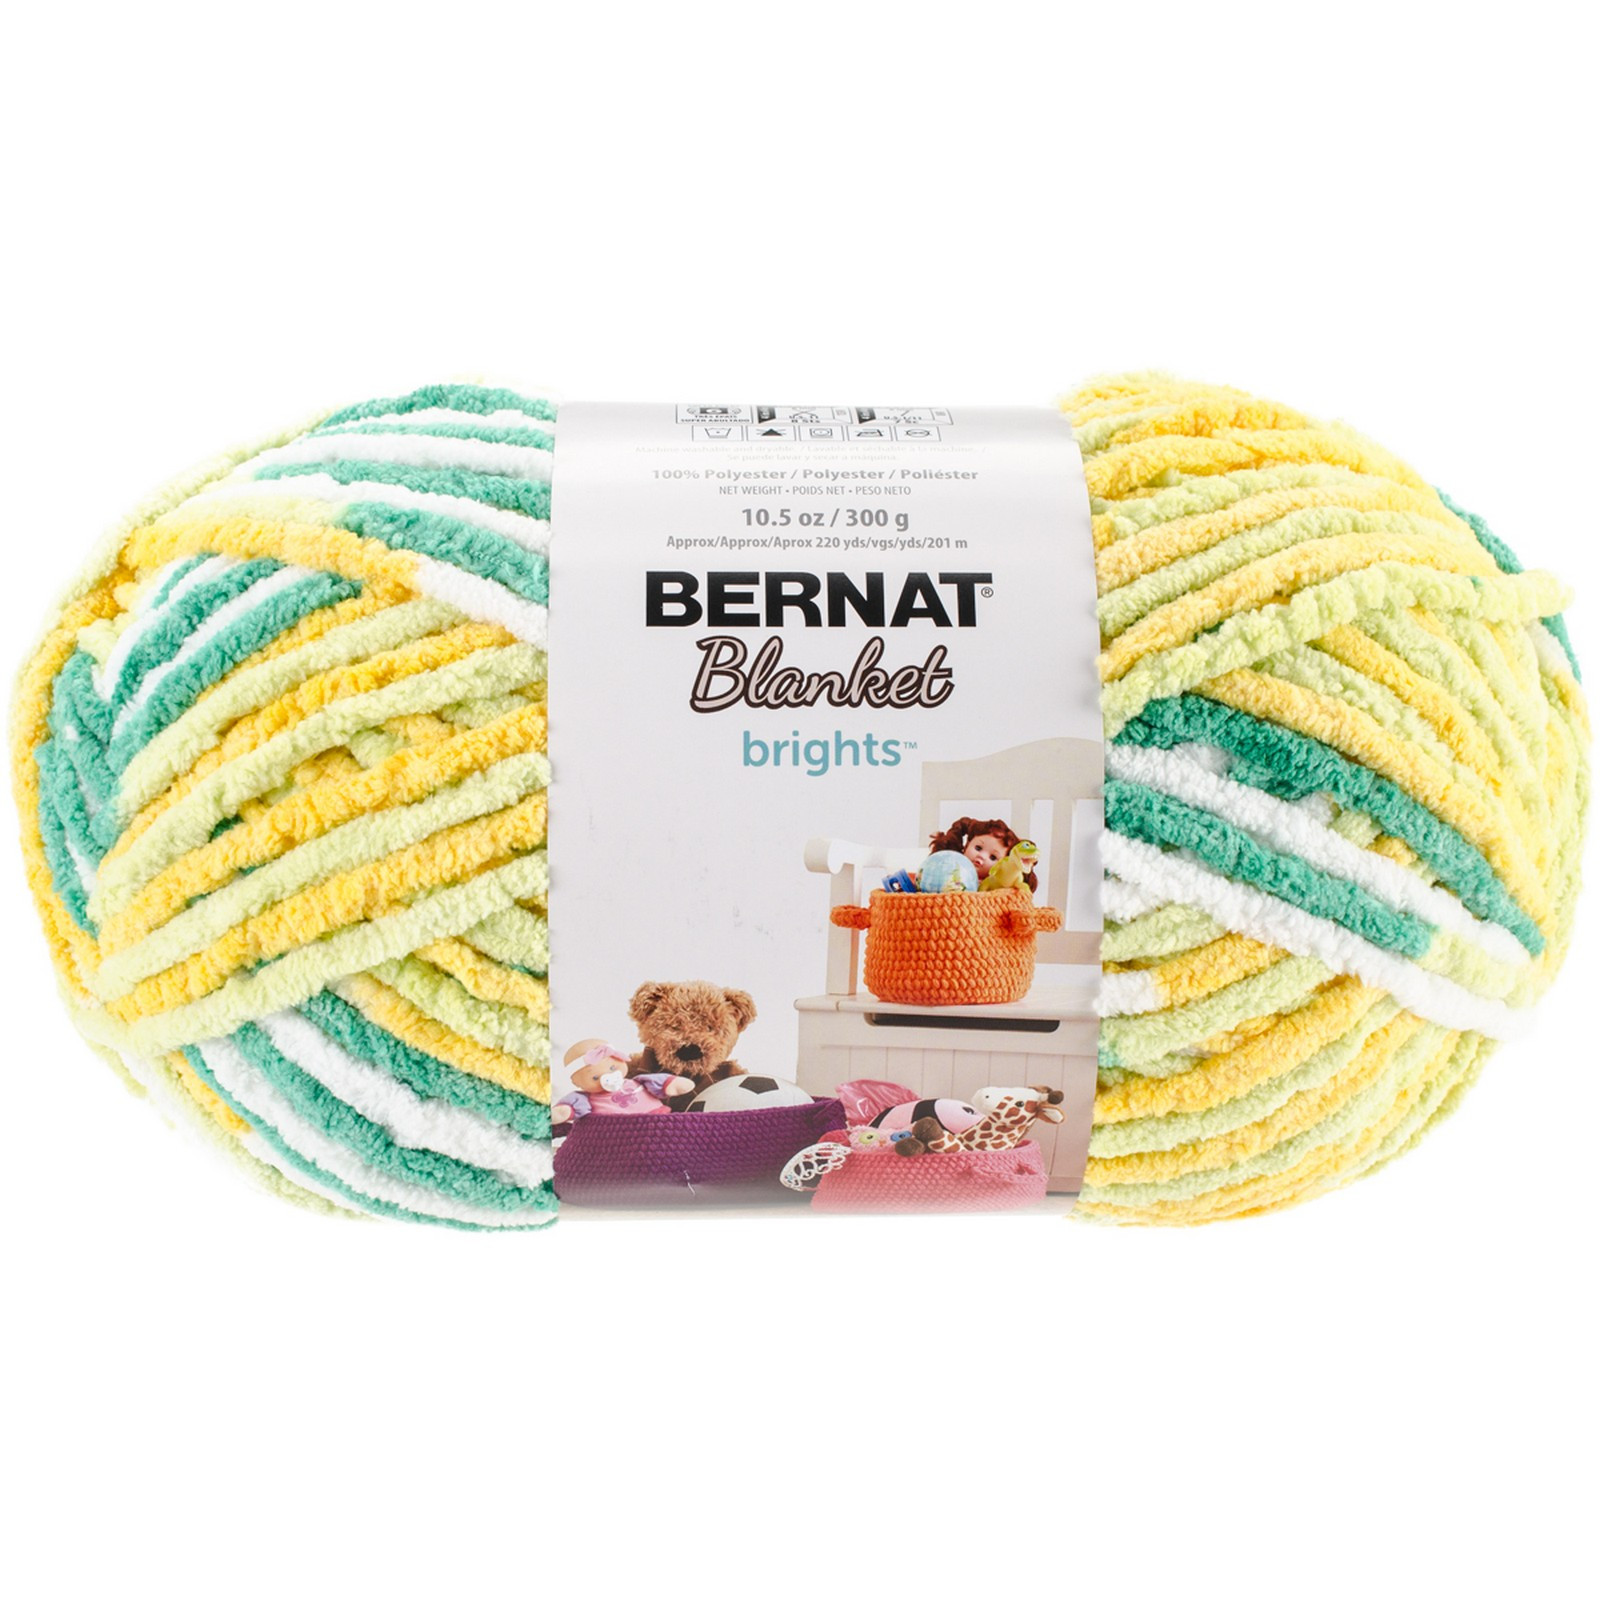 Bernat Blanket Brights Best Of Bernat Blanket Brights Big Ball Yarn Lemonade Variegated Of Amazing 42 Pictures Bernat Blanket Brights